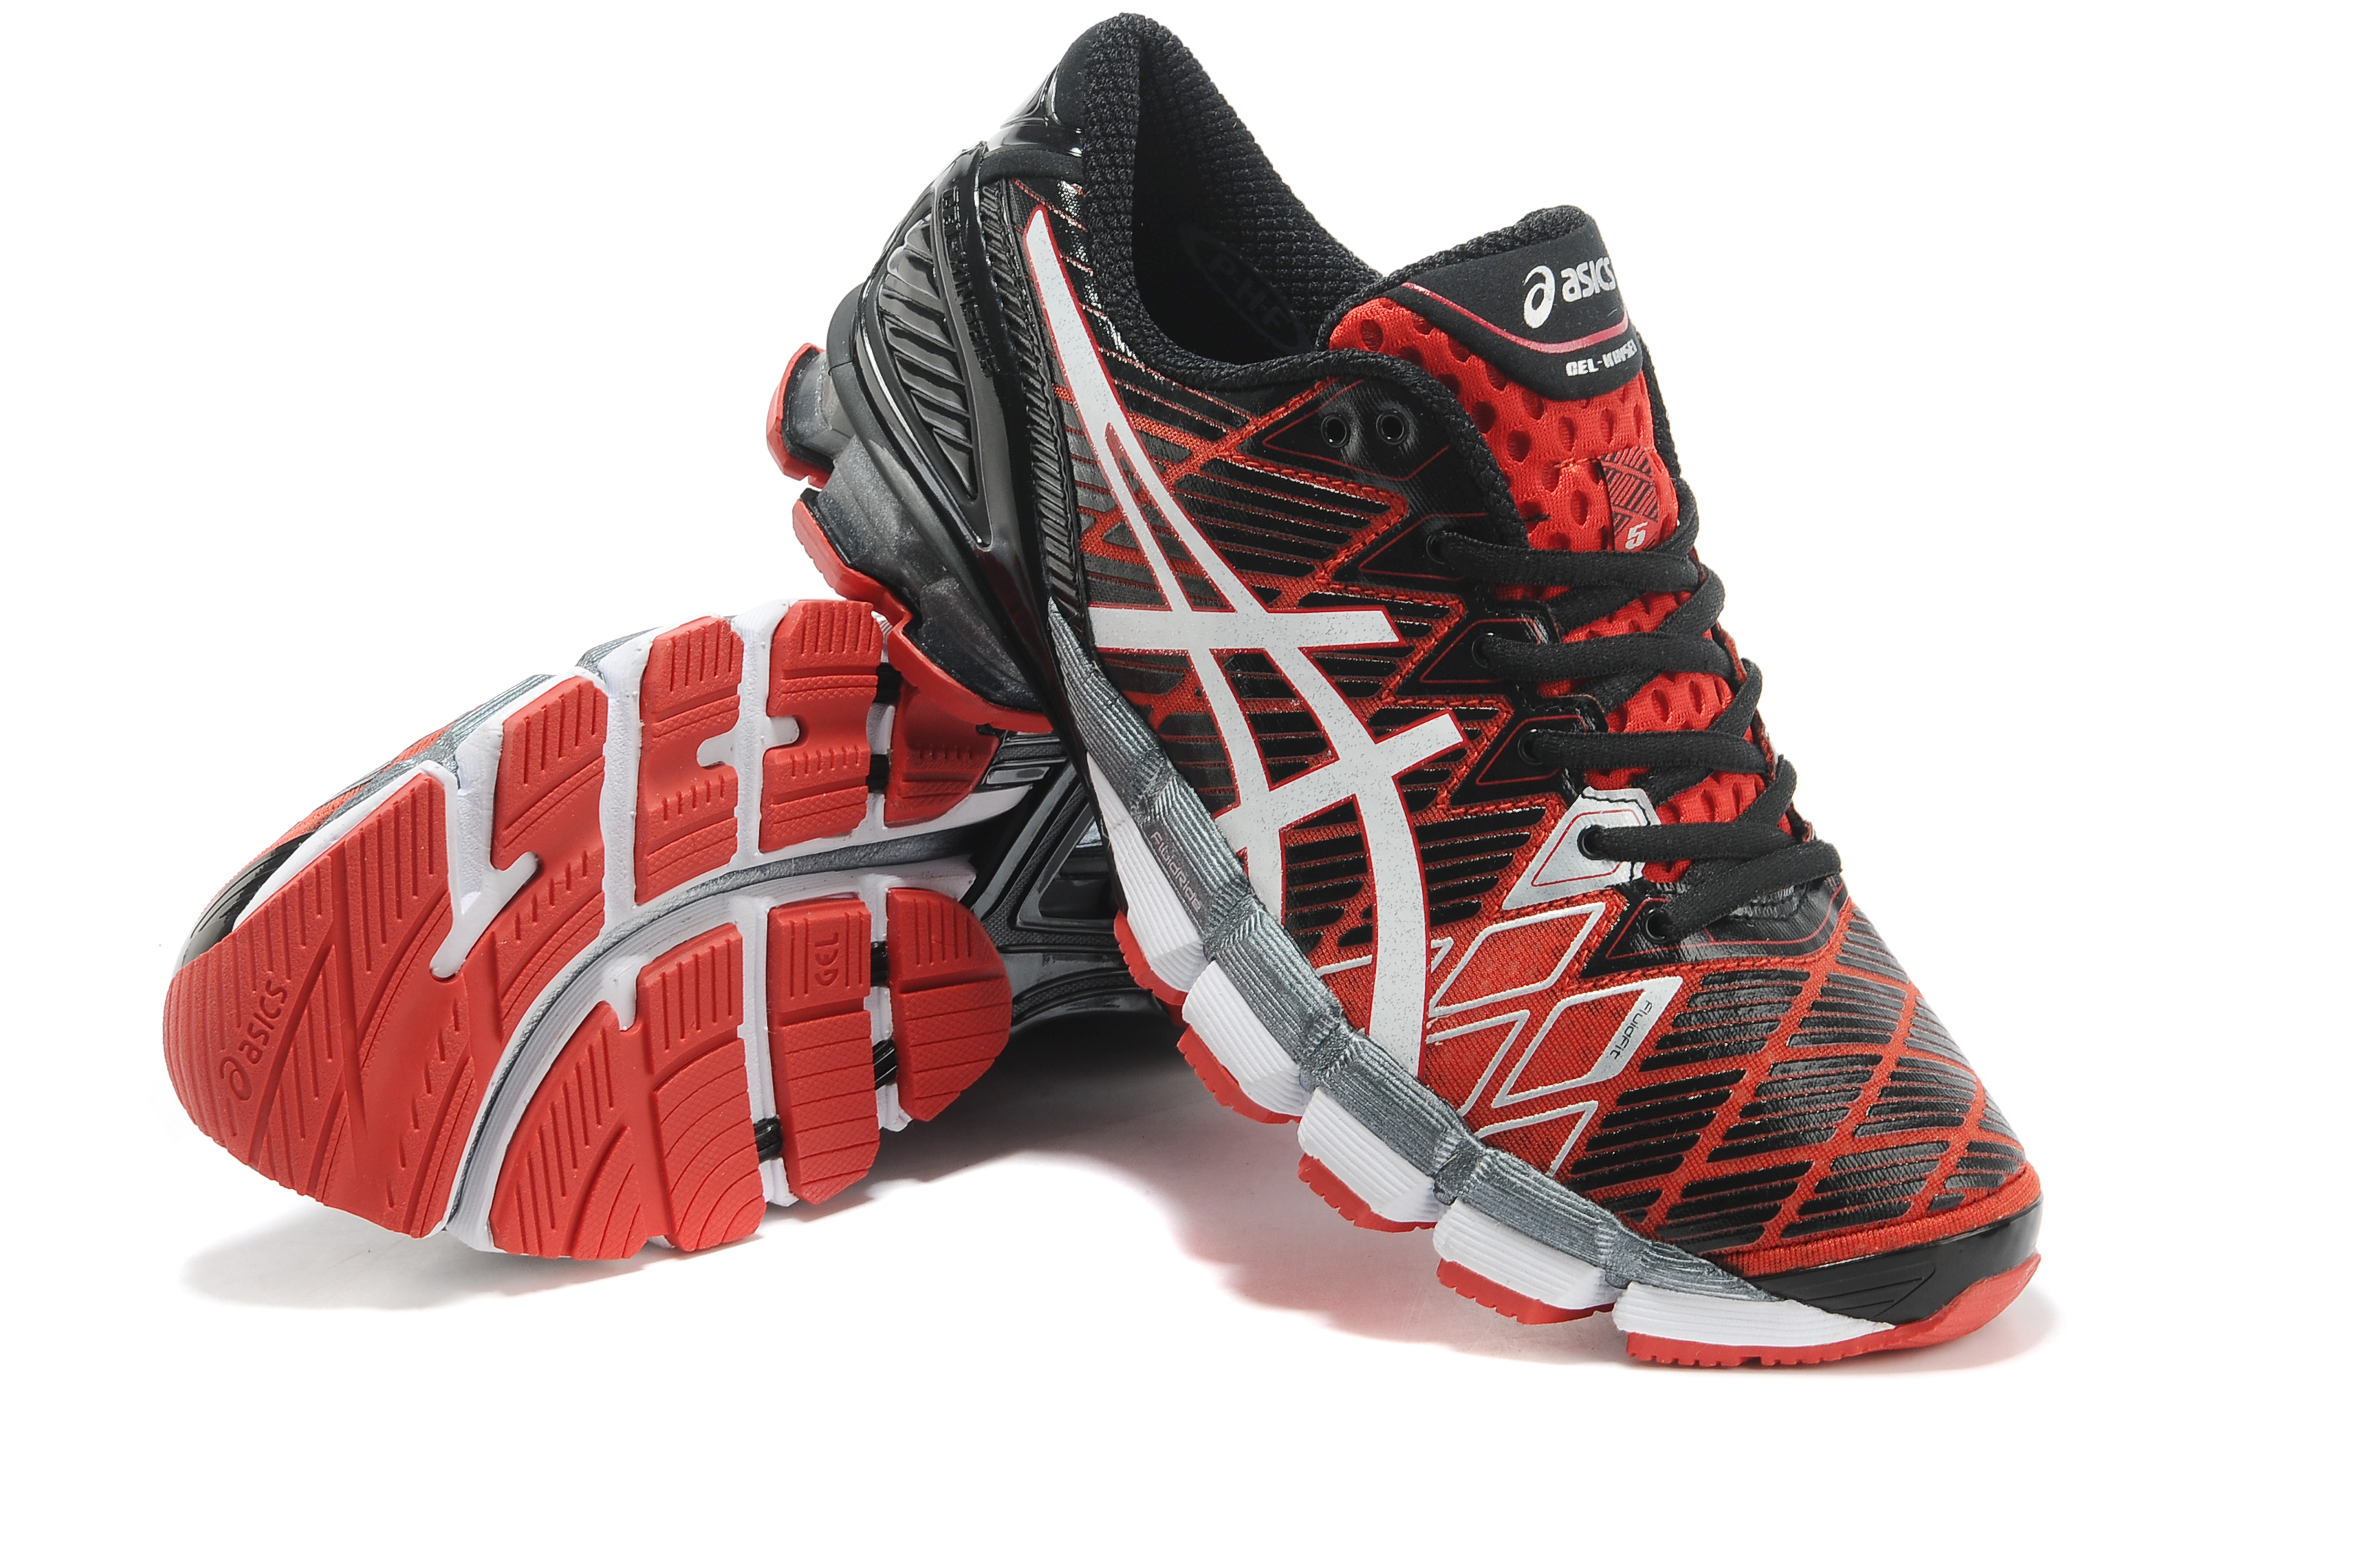 5ad349d63aee Asics gel-5 men running shoes red black  AS-00206  -  119.00   Asics ...